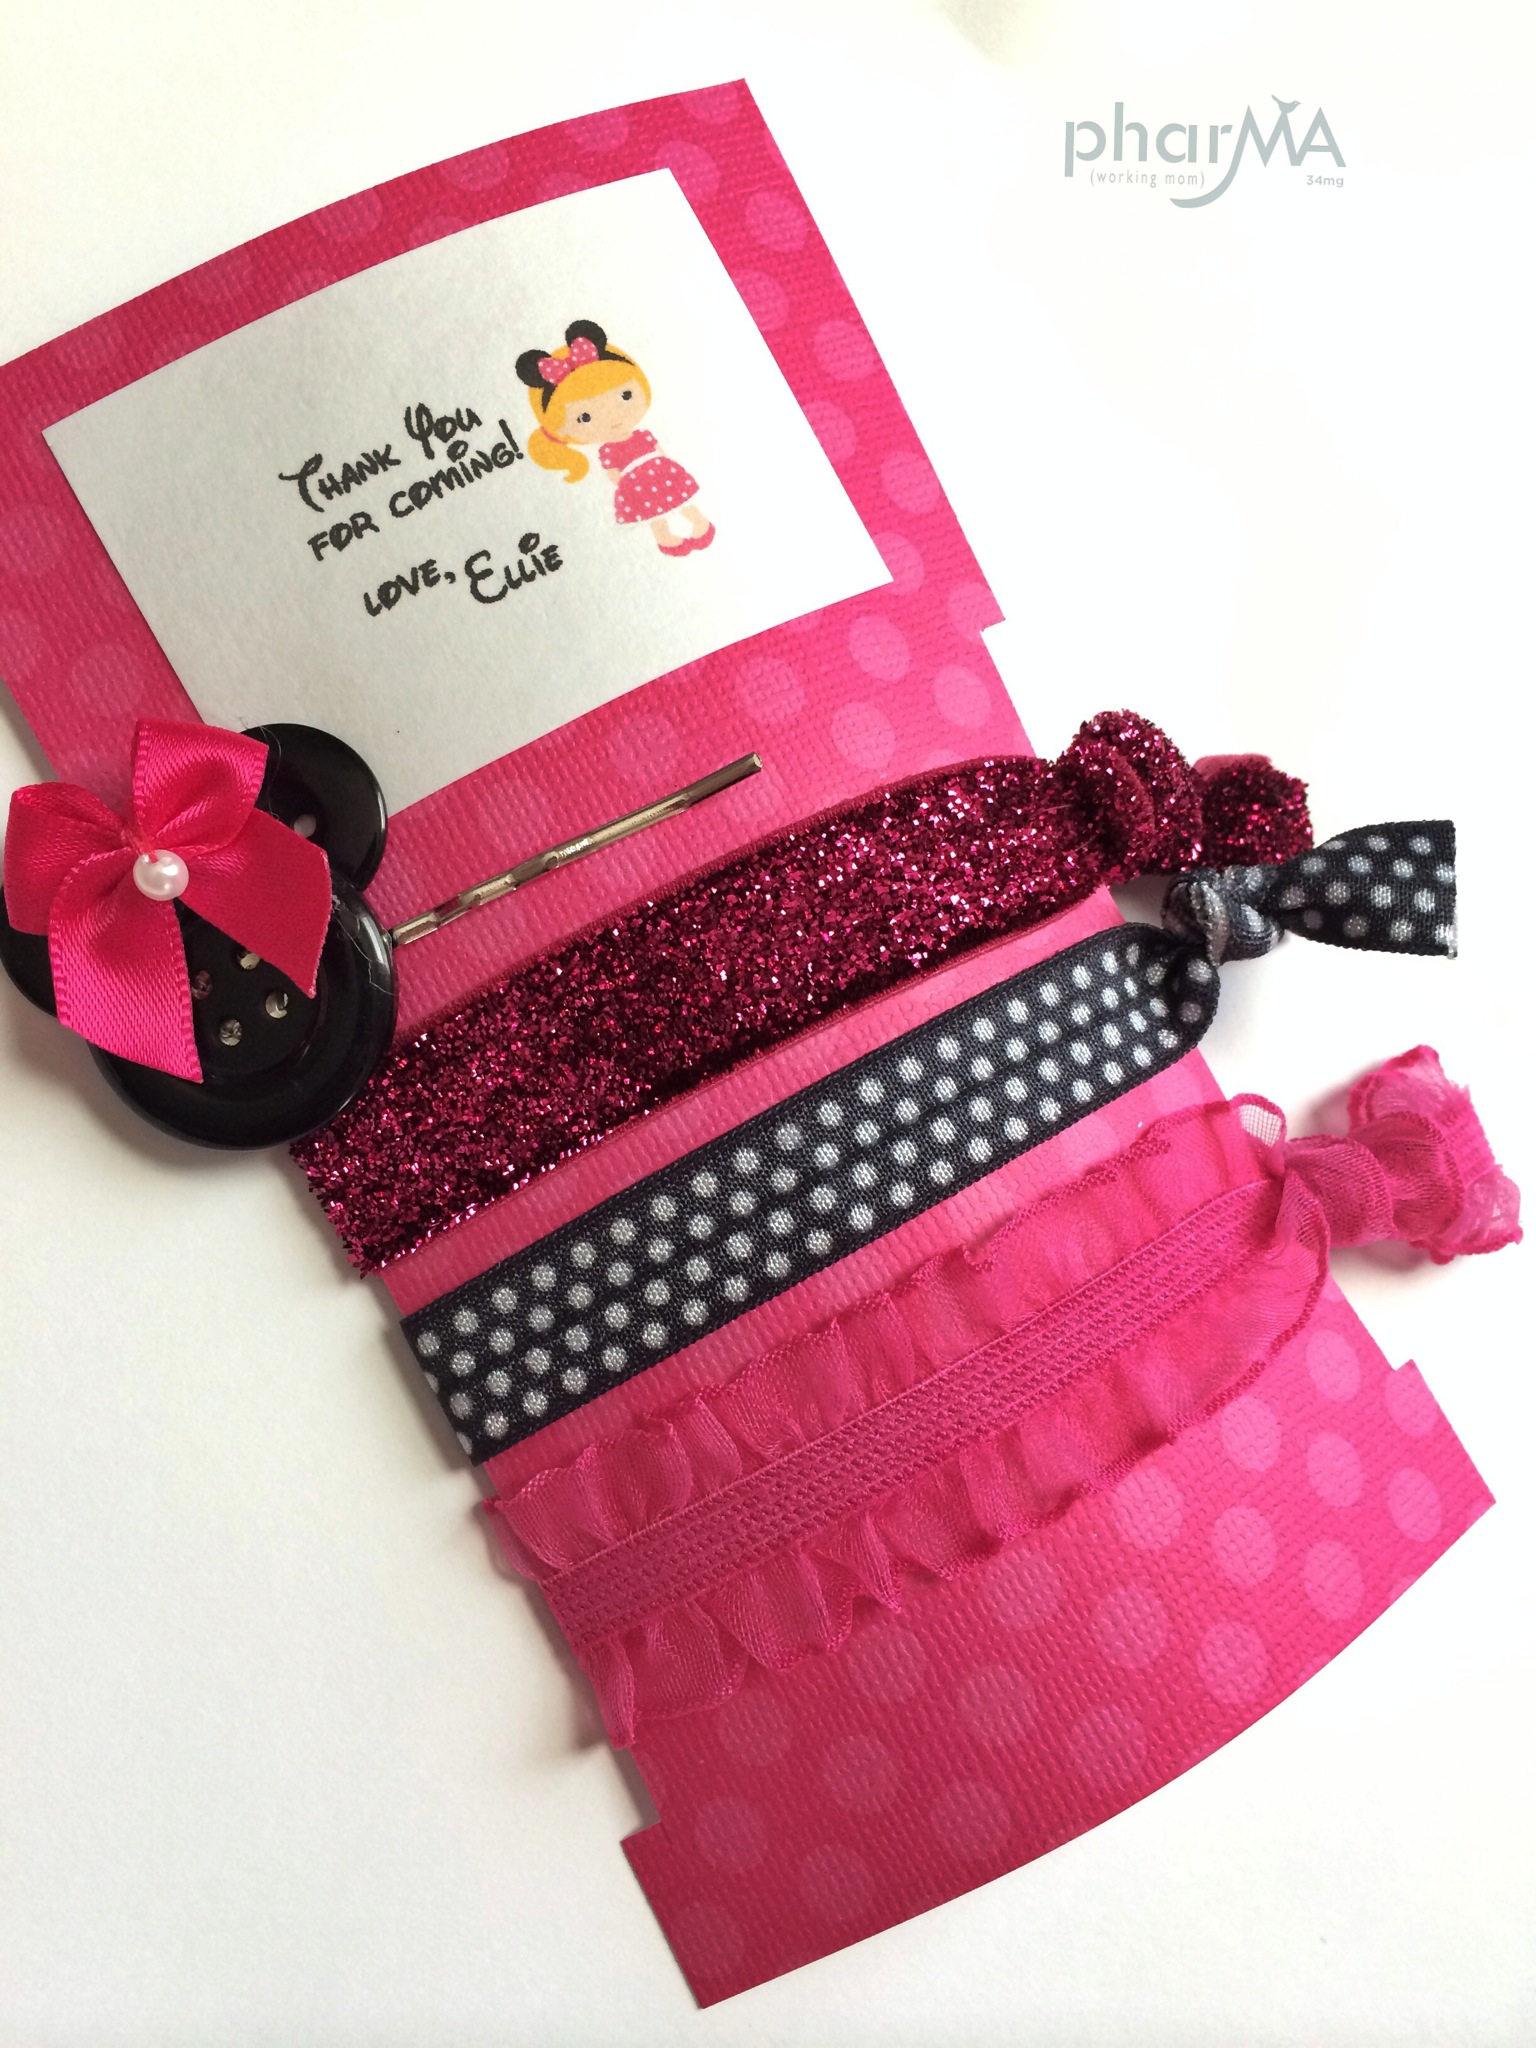 Minnie Mouse Party Favors Pink and Black, DIY Hair Accessories